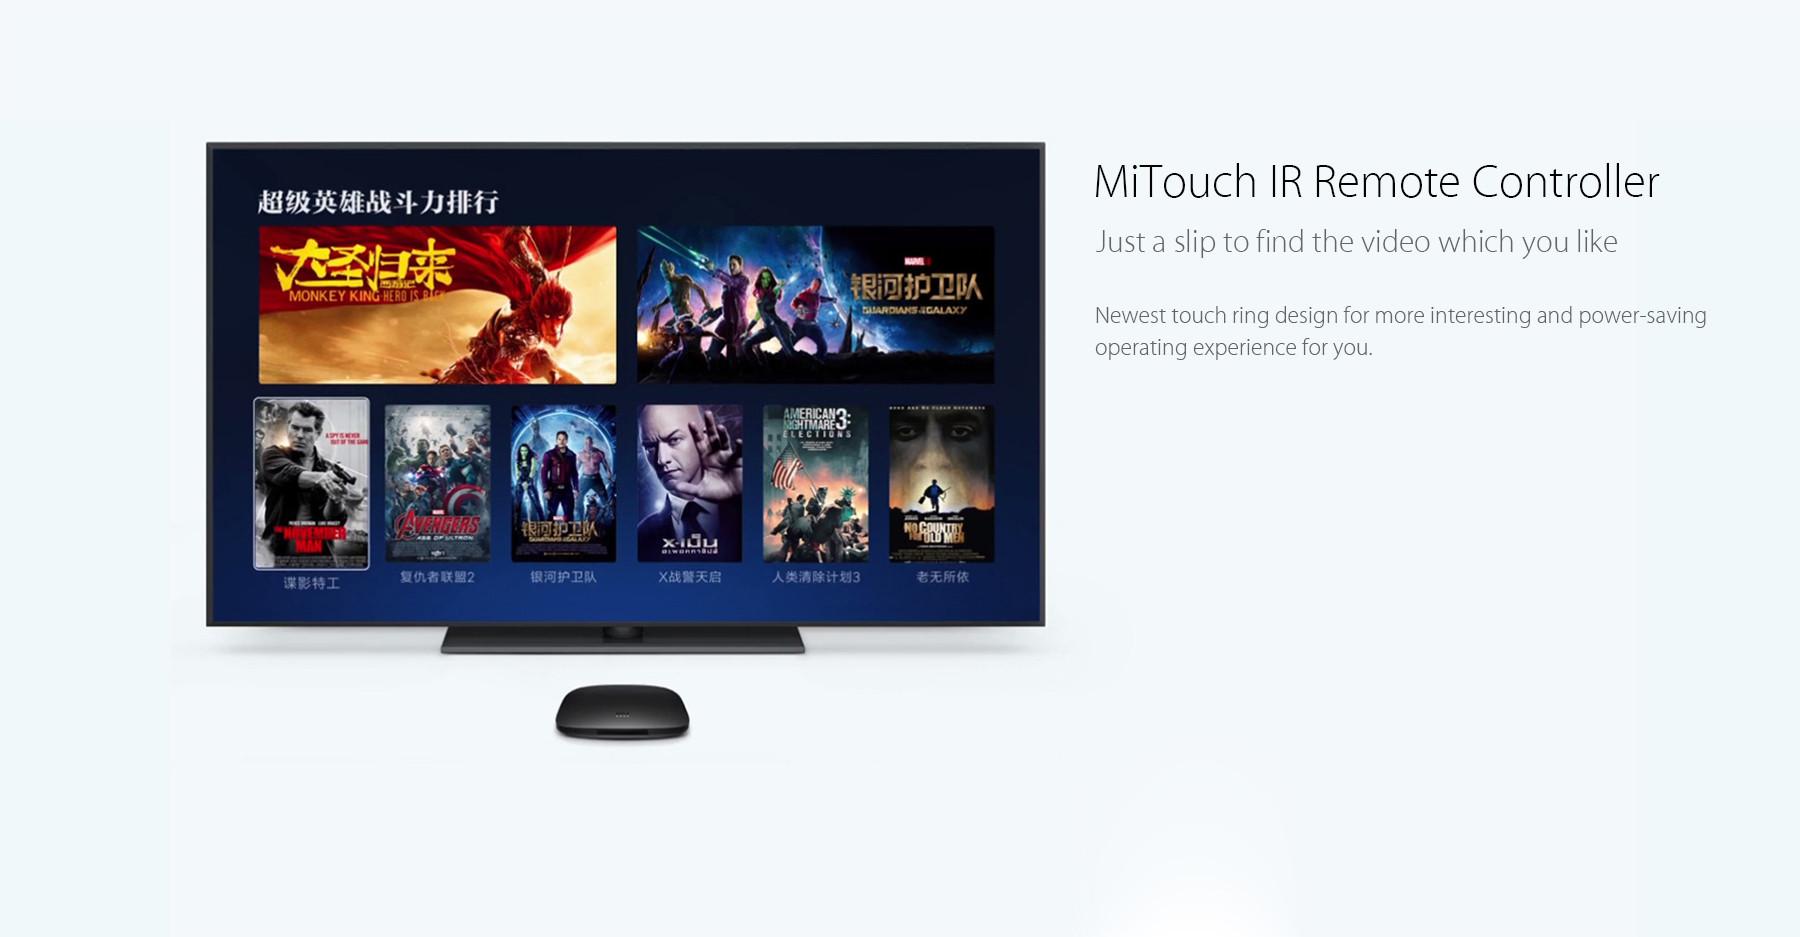 Original Xiaomi Mi 3s Tv Box Amlogic S905x Quad Core 6499 Free Controller To Control A Brushless Dc Motor Robotics Stack Exchange Package Contents 1 X Mitouch Ir Touch Remote Hdmi Cable Power Adapter Chinese Manual